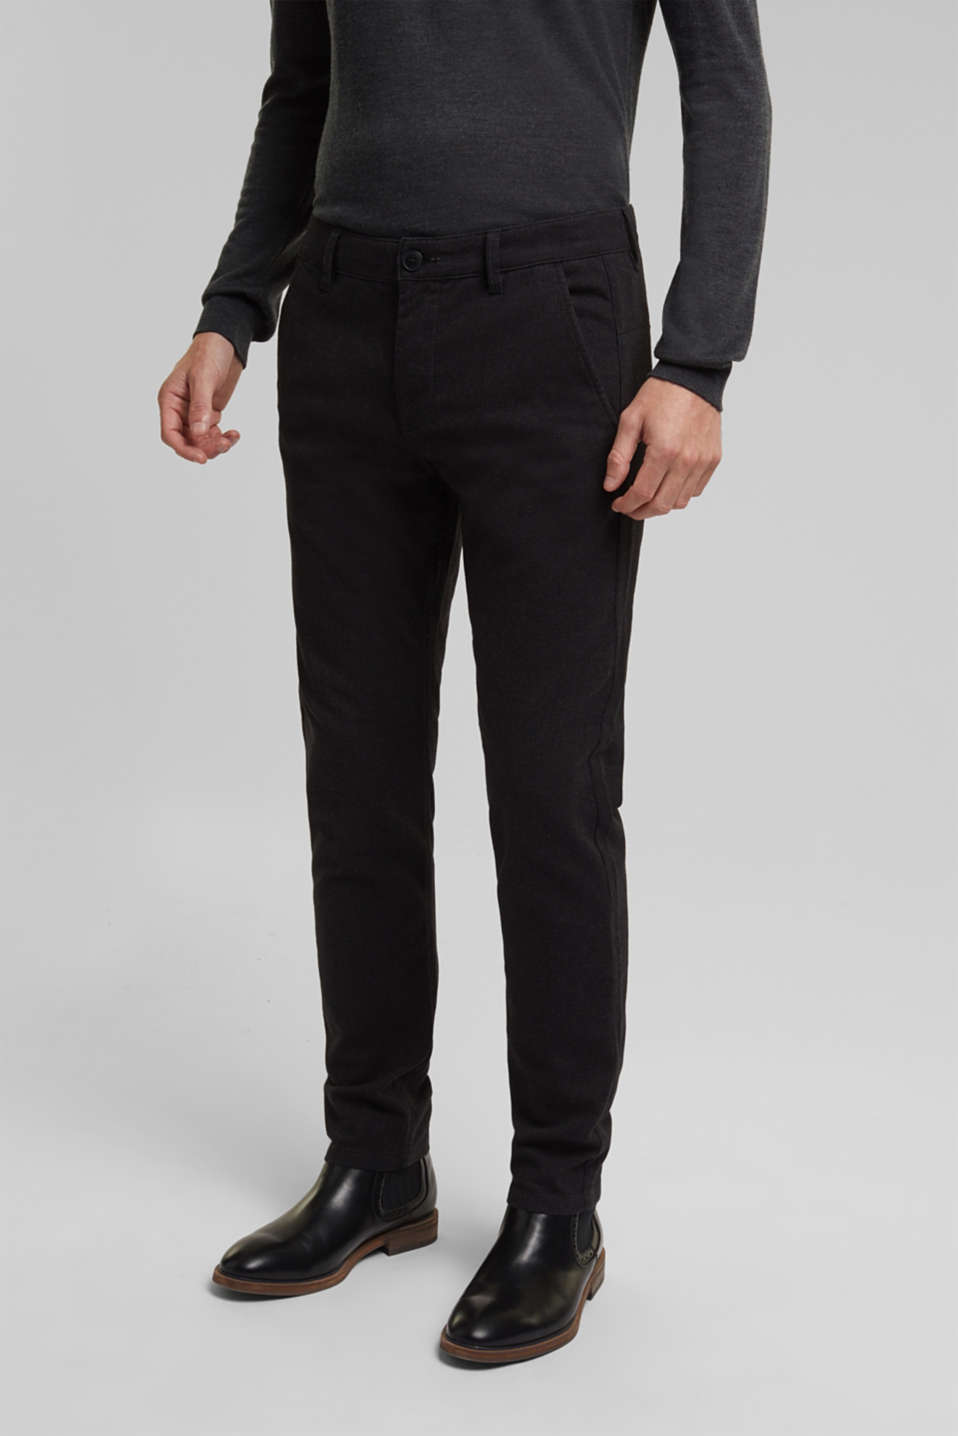 Esprit - structured pants